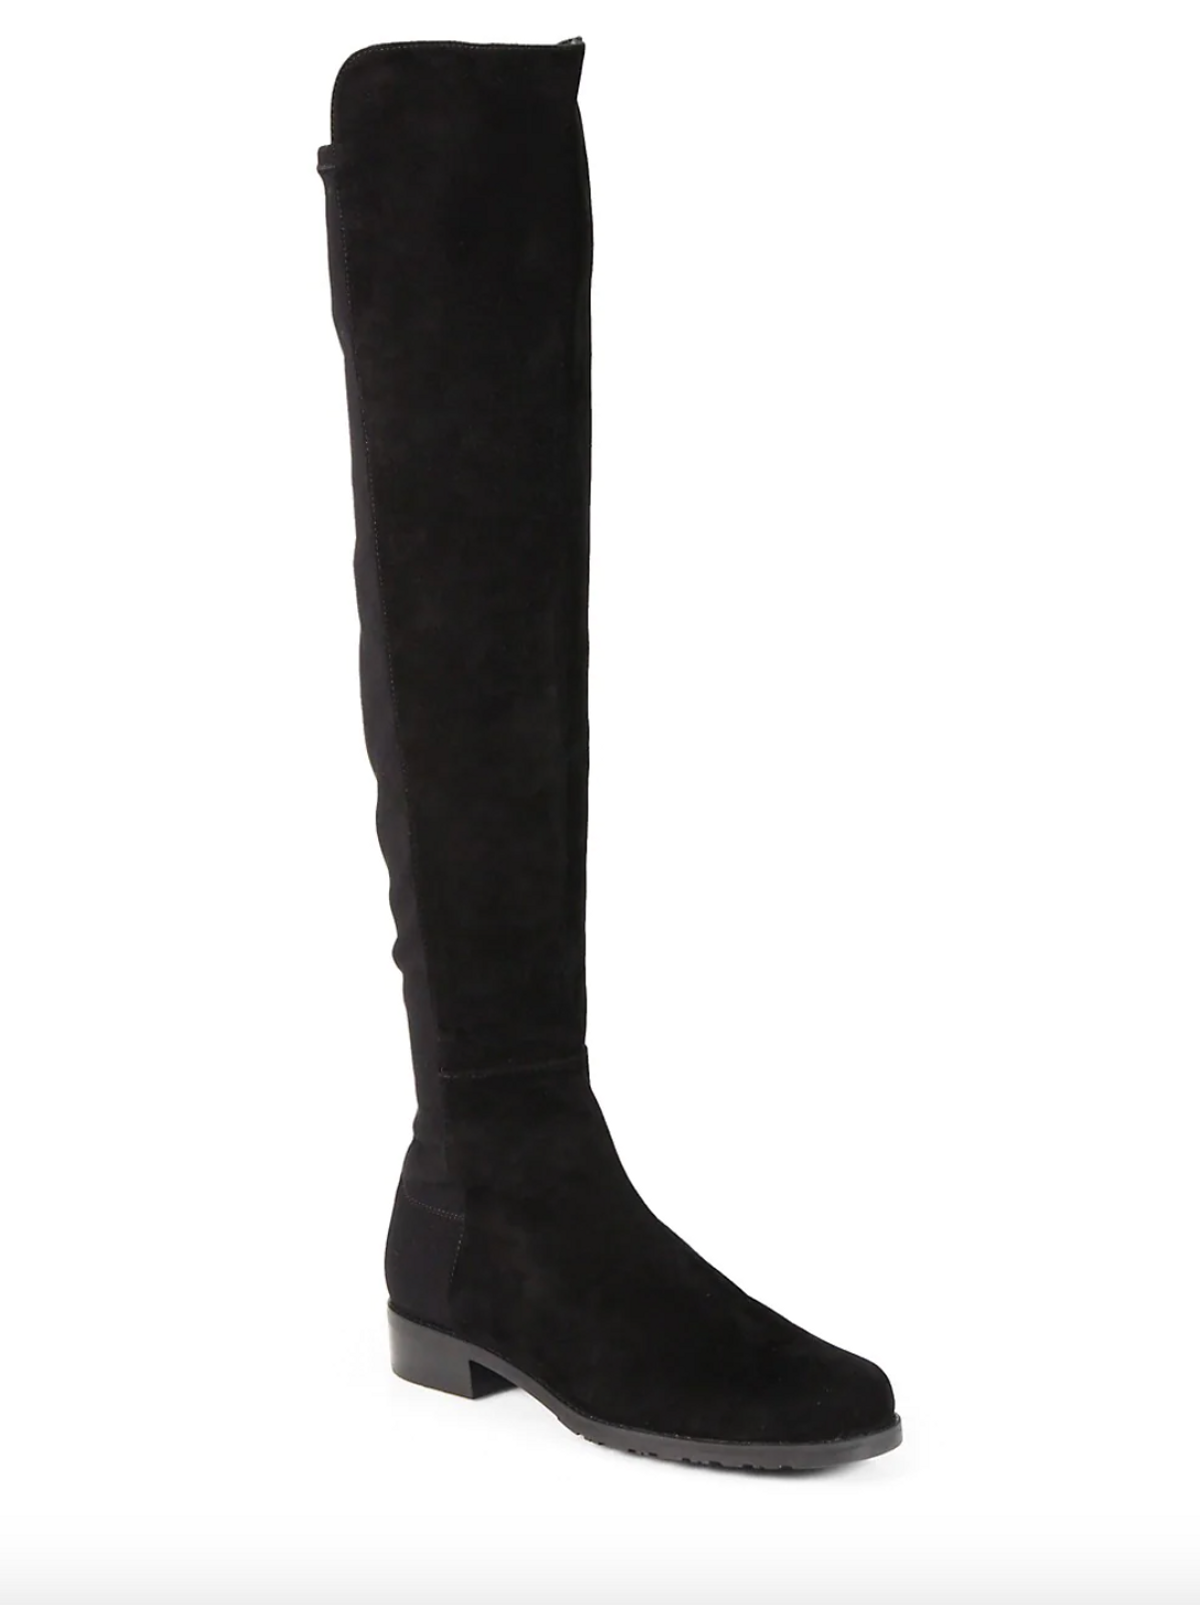 5050 Over-the-Knee Stretch Suede Boots